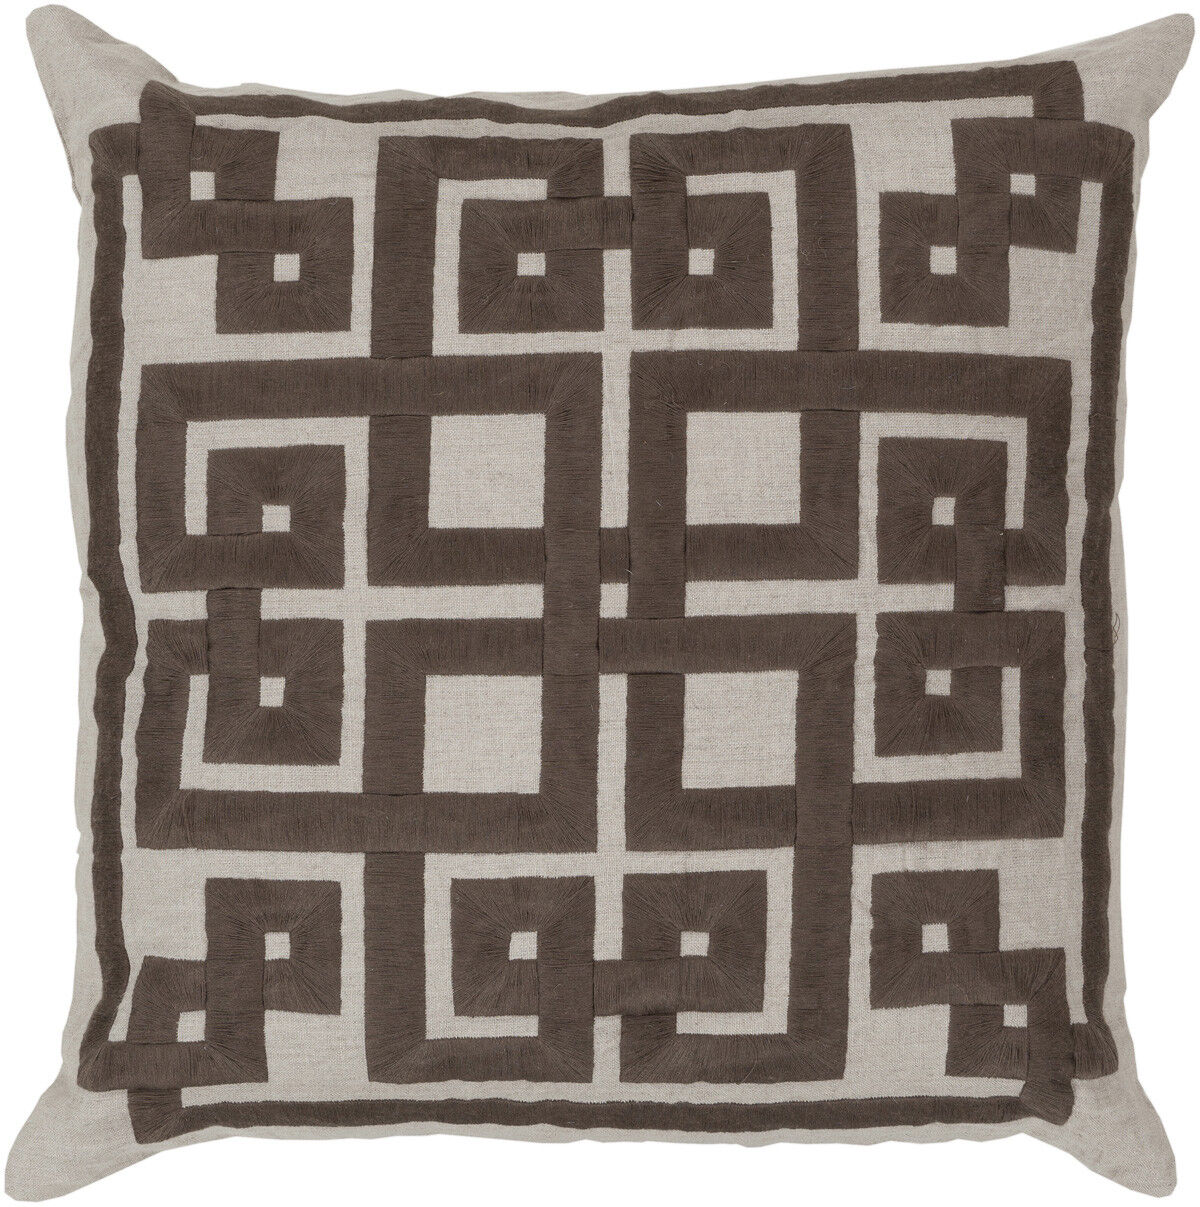 Surya Brown Lattice Knot Trellis Squares Contemporary Area Rug Embroidered LD001